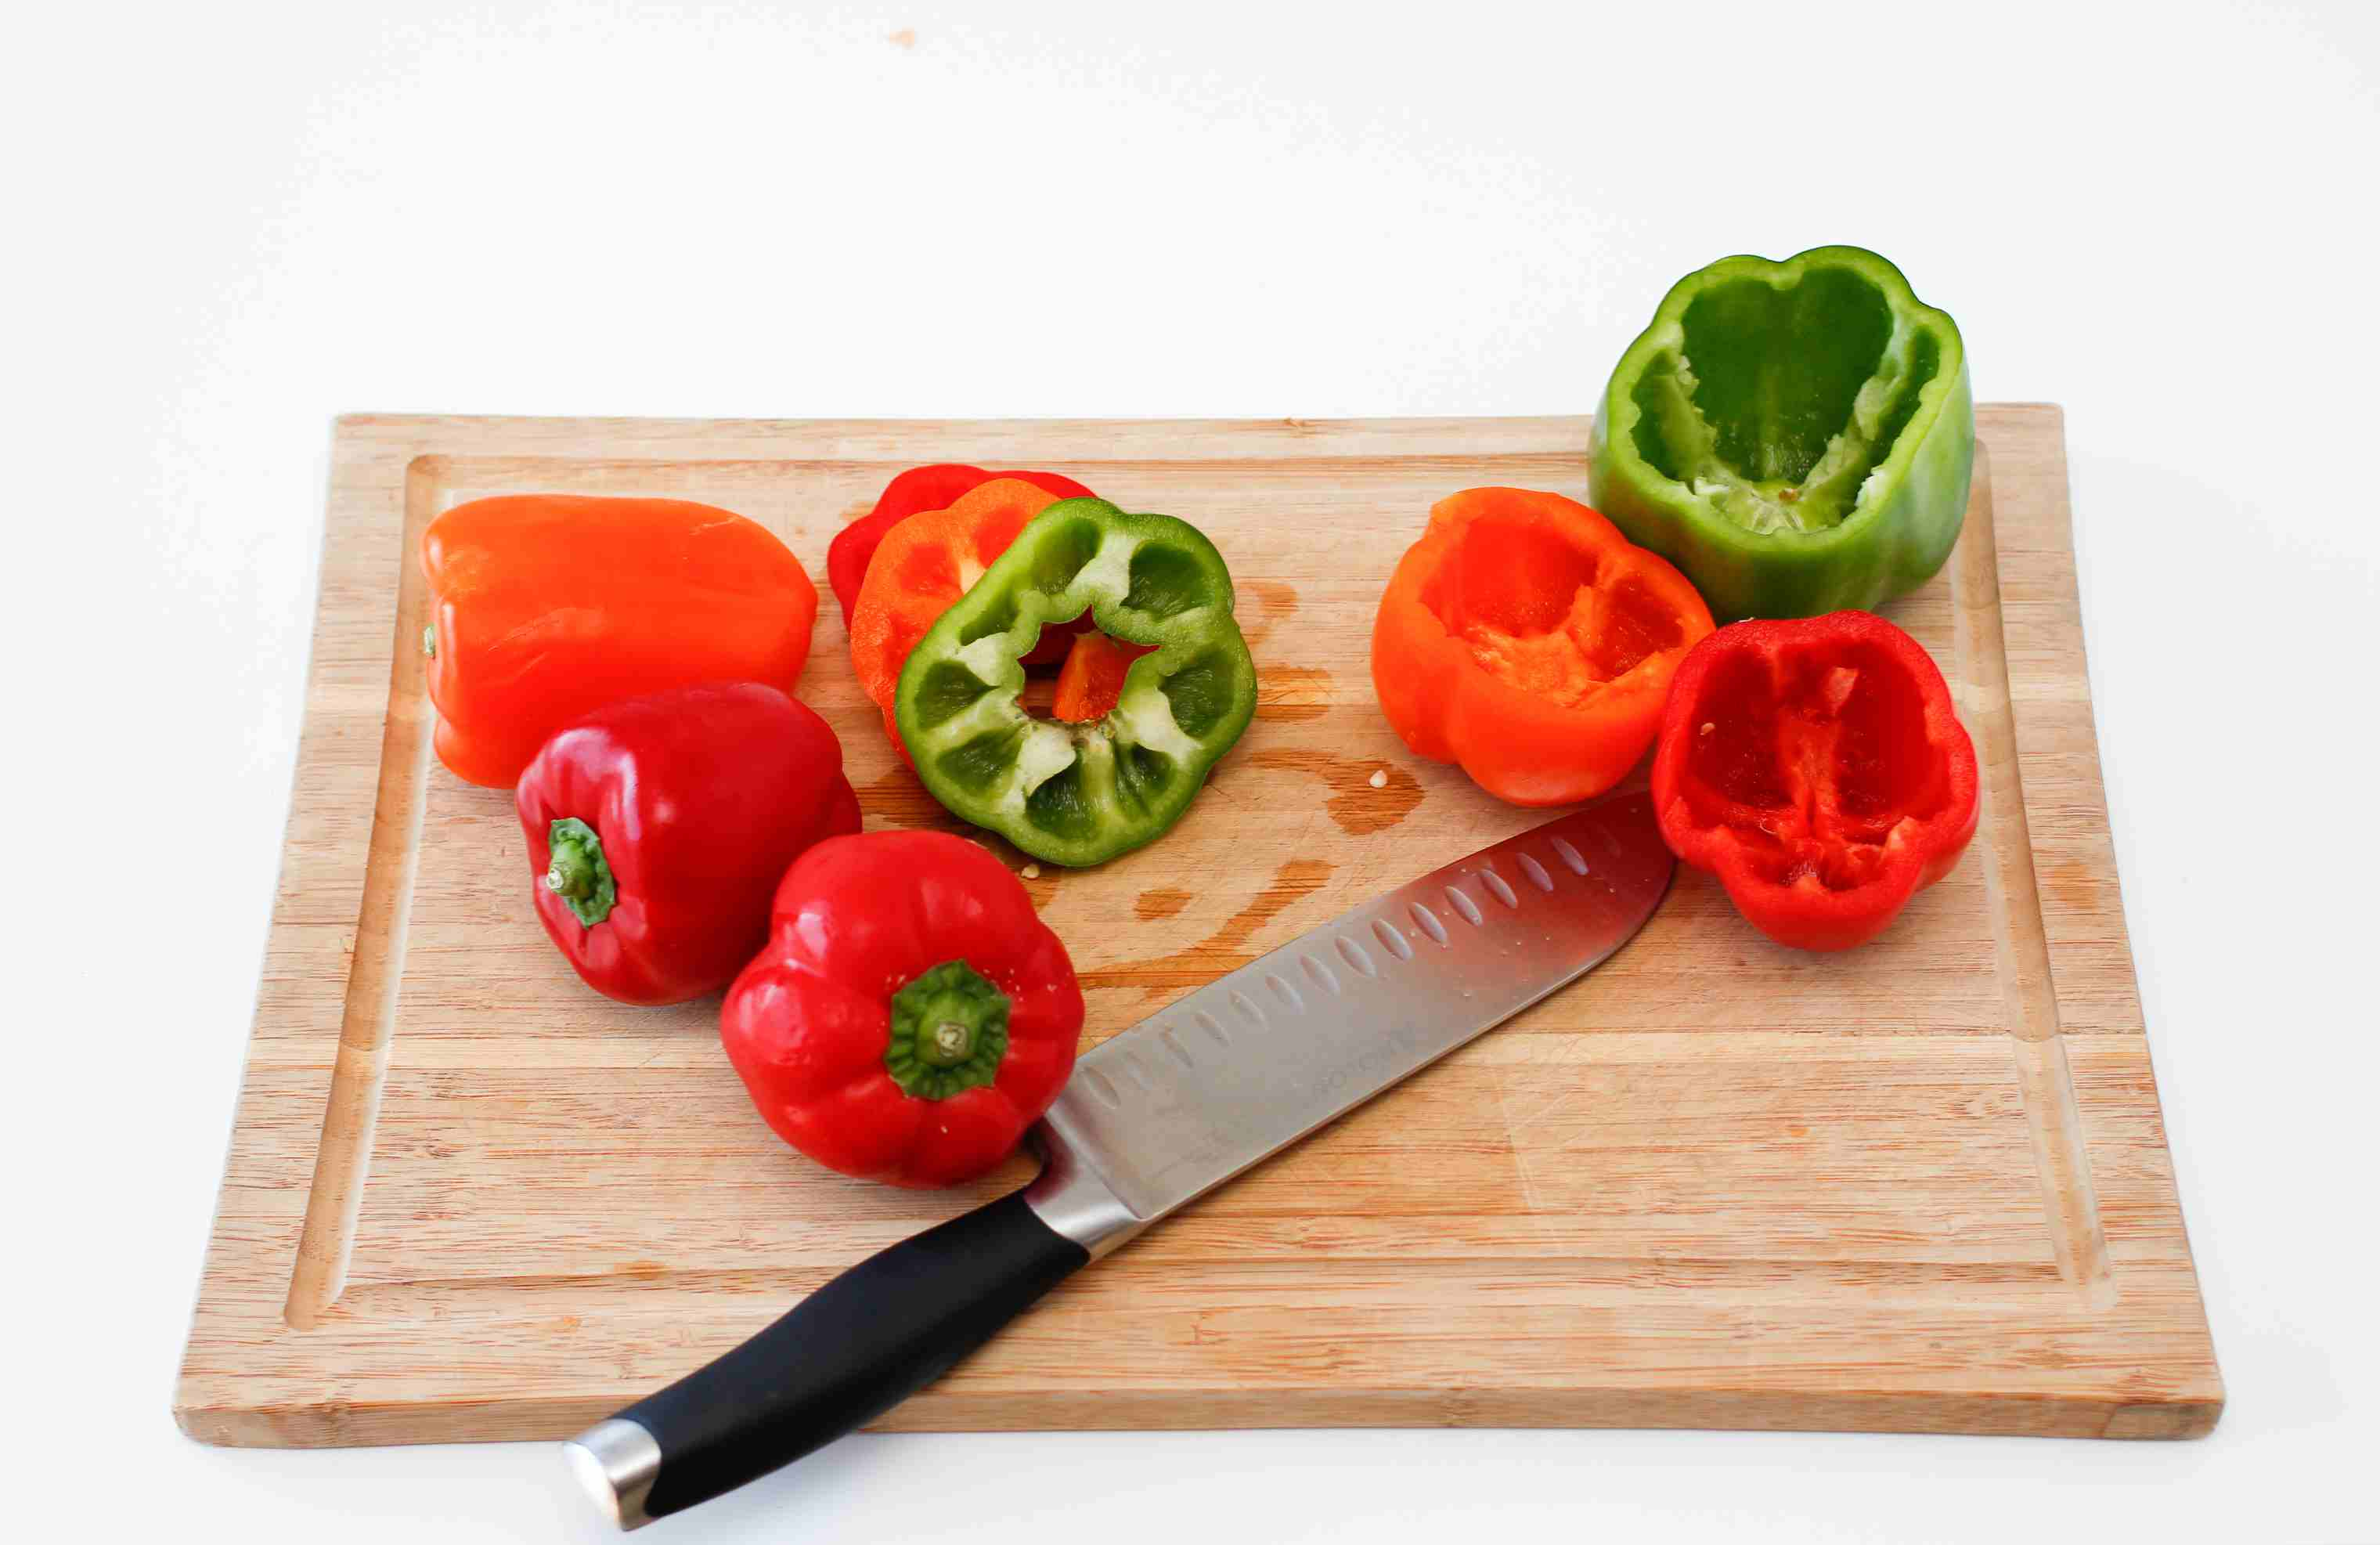 Bell peppers with tops removed on a cutting board with a knife